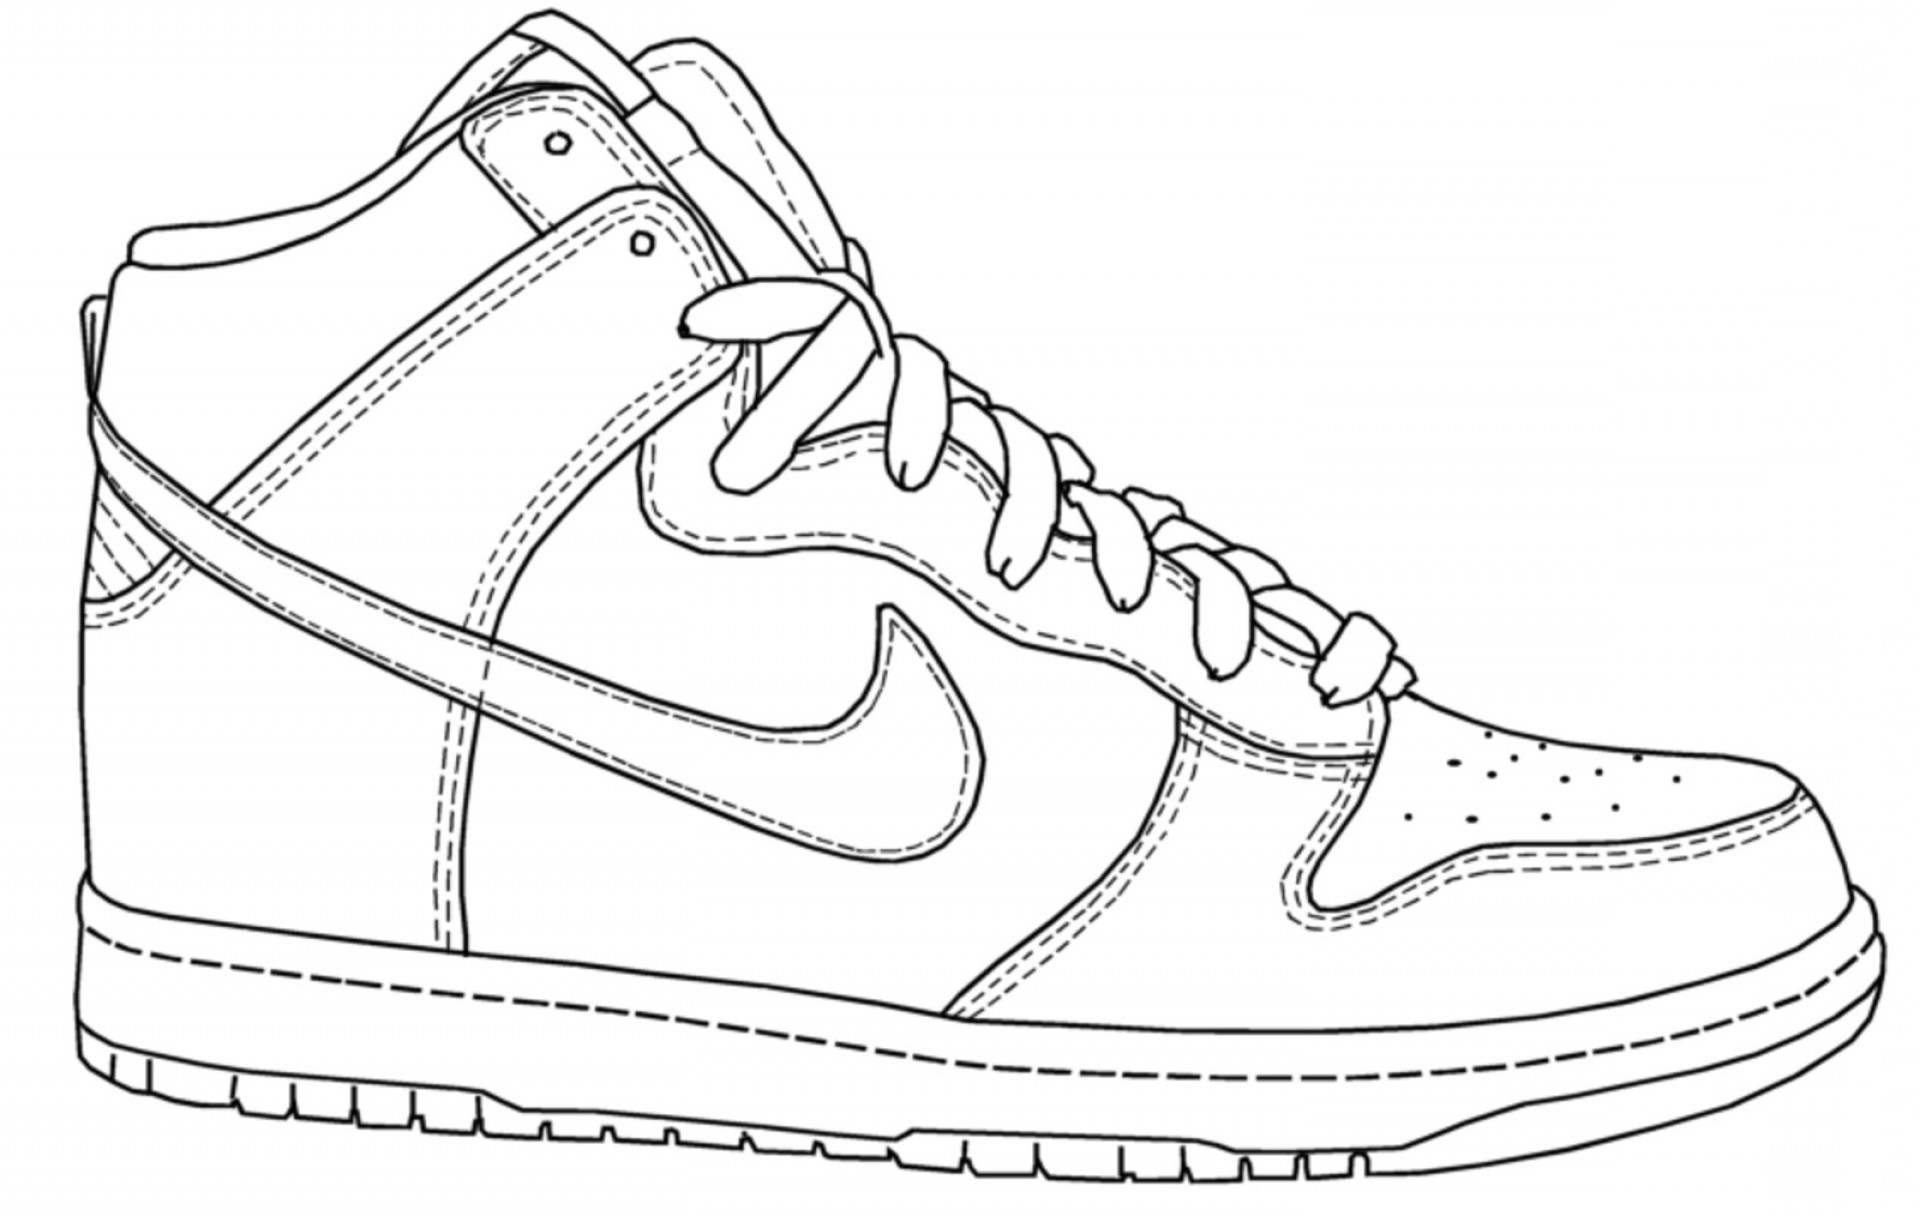 nike coloring pages nike shoe drawing at getdrawings free download coloring nike pages